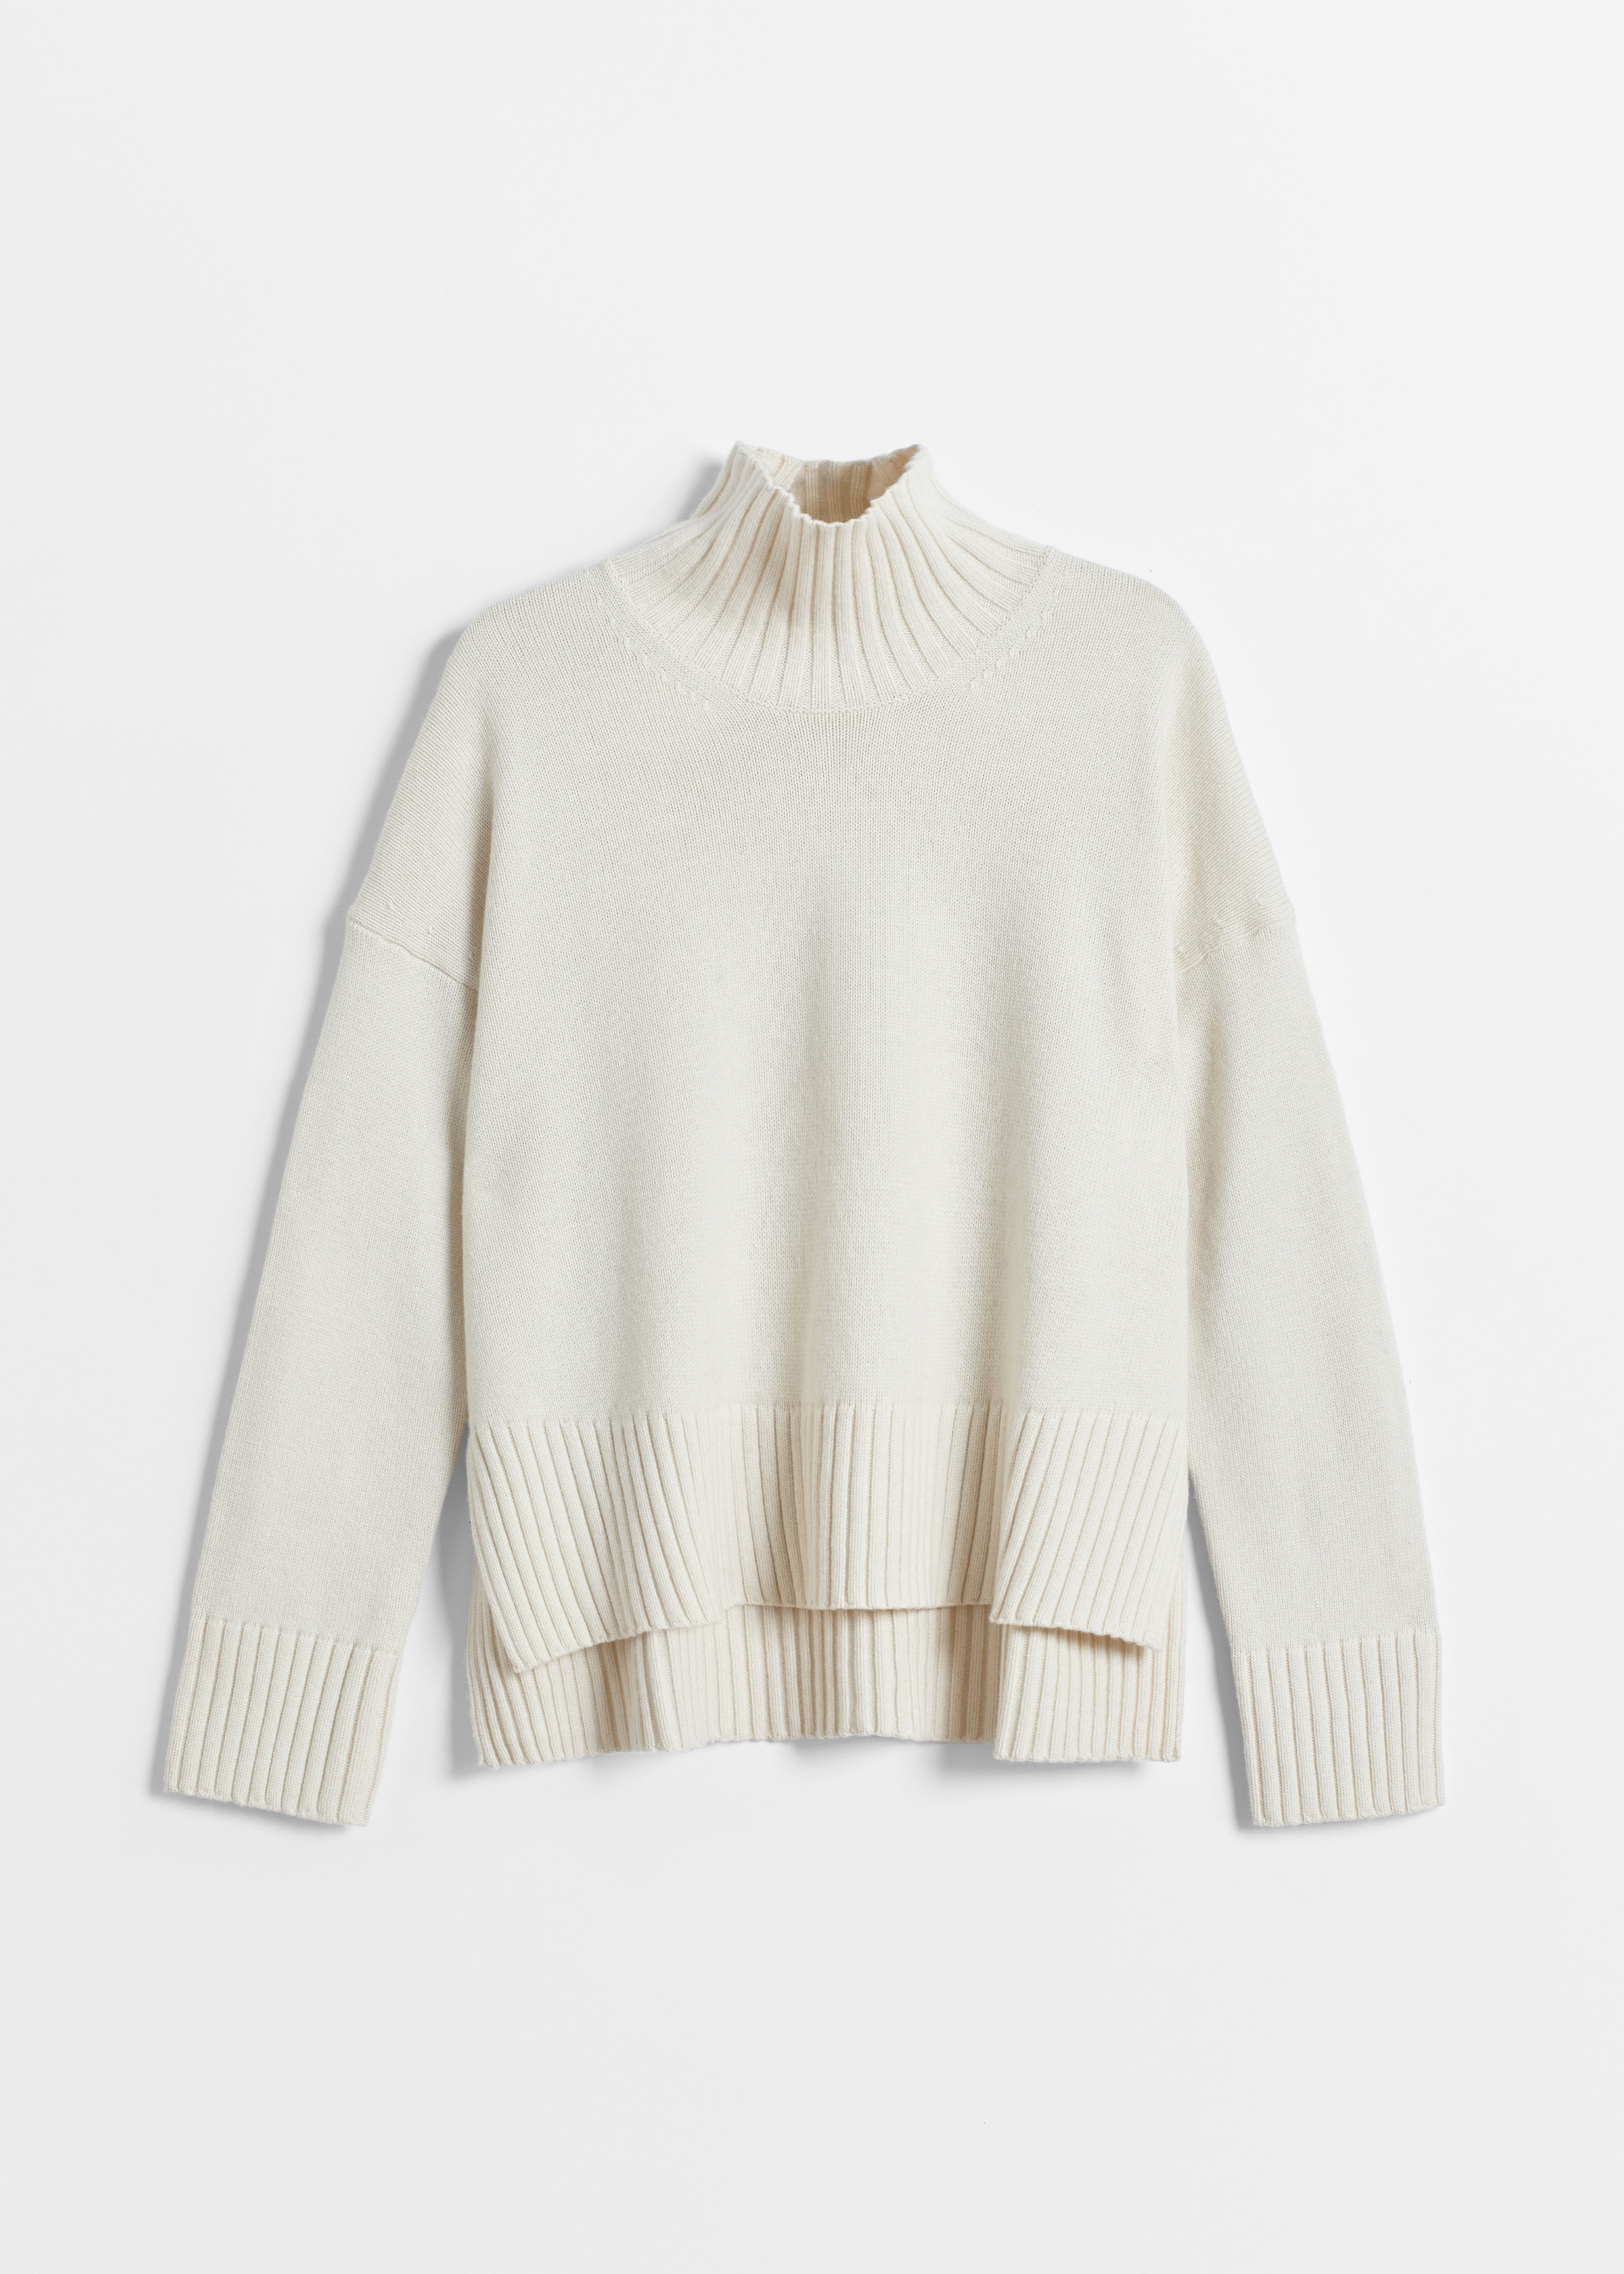 High Neck Sweater in Wool Cashmere - Taupe in Ivory by Co Collections